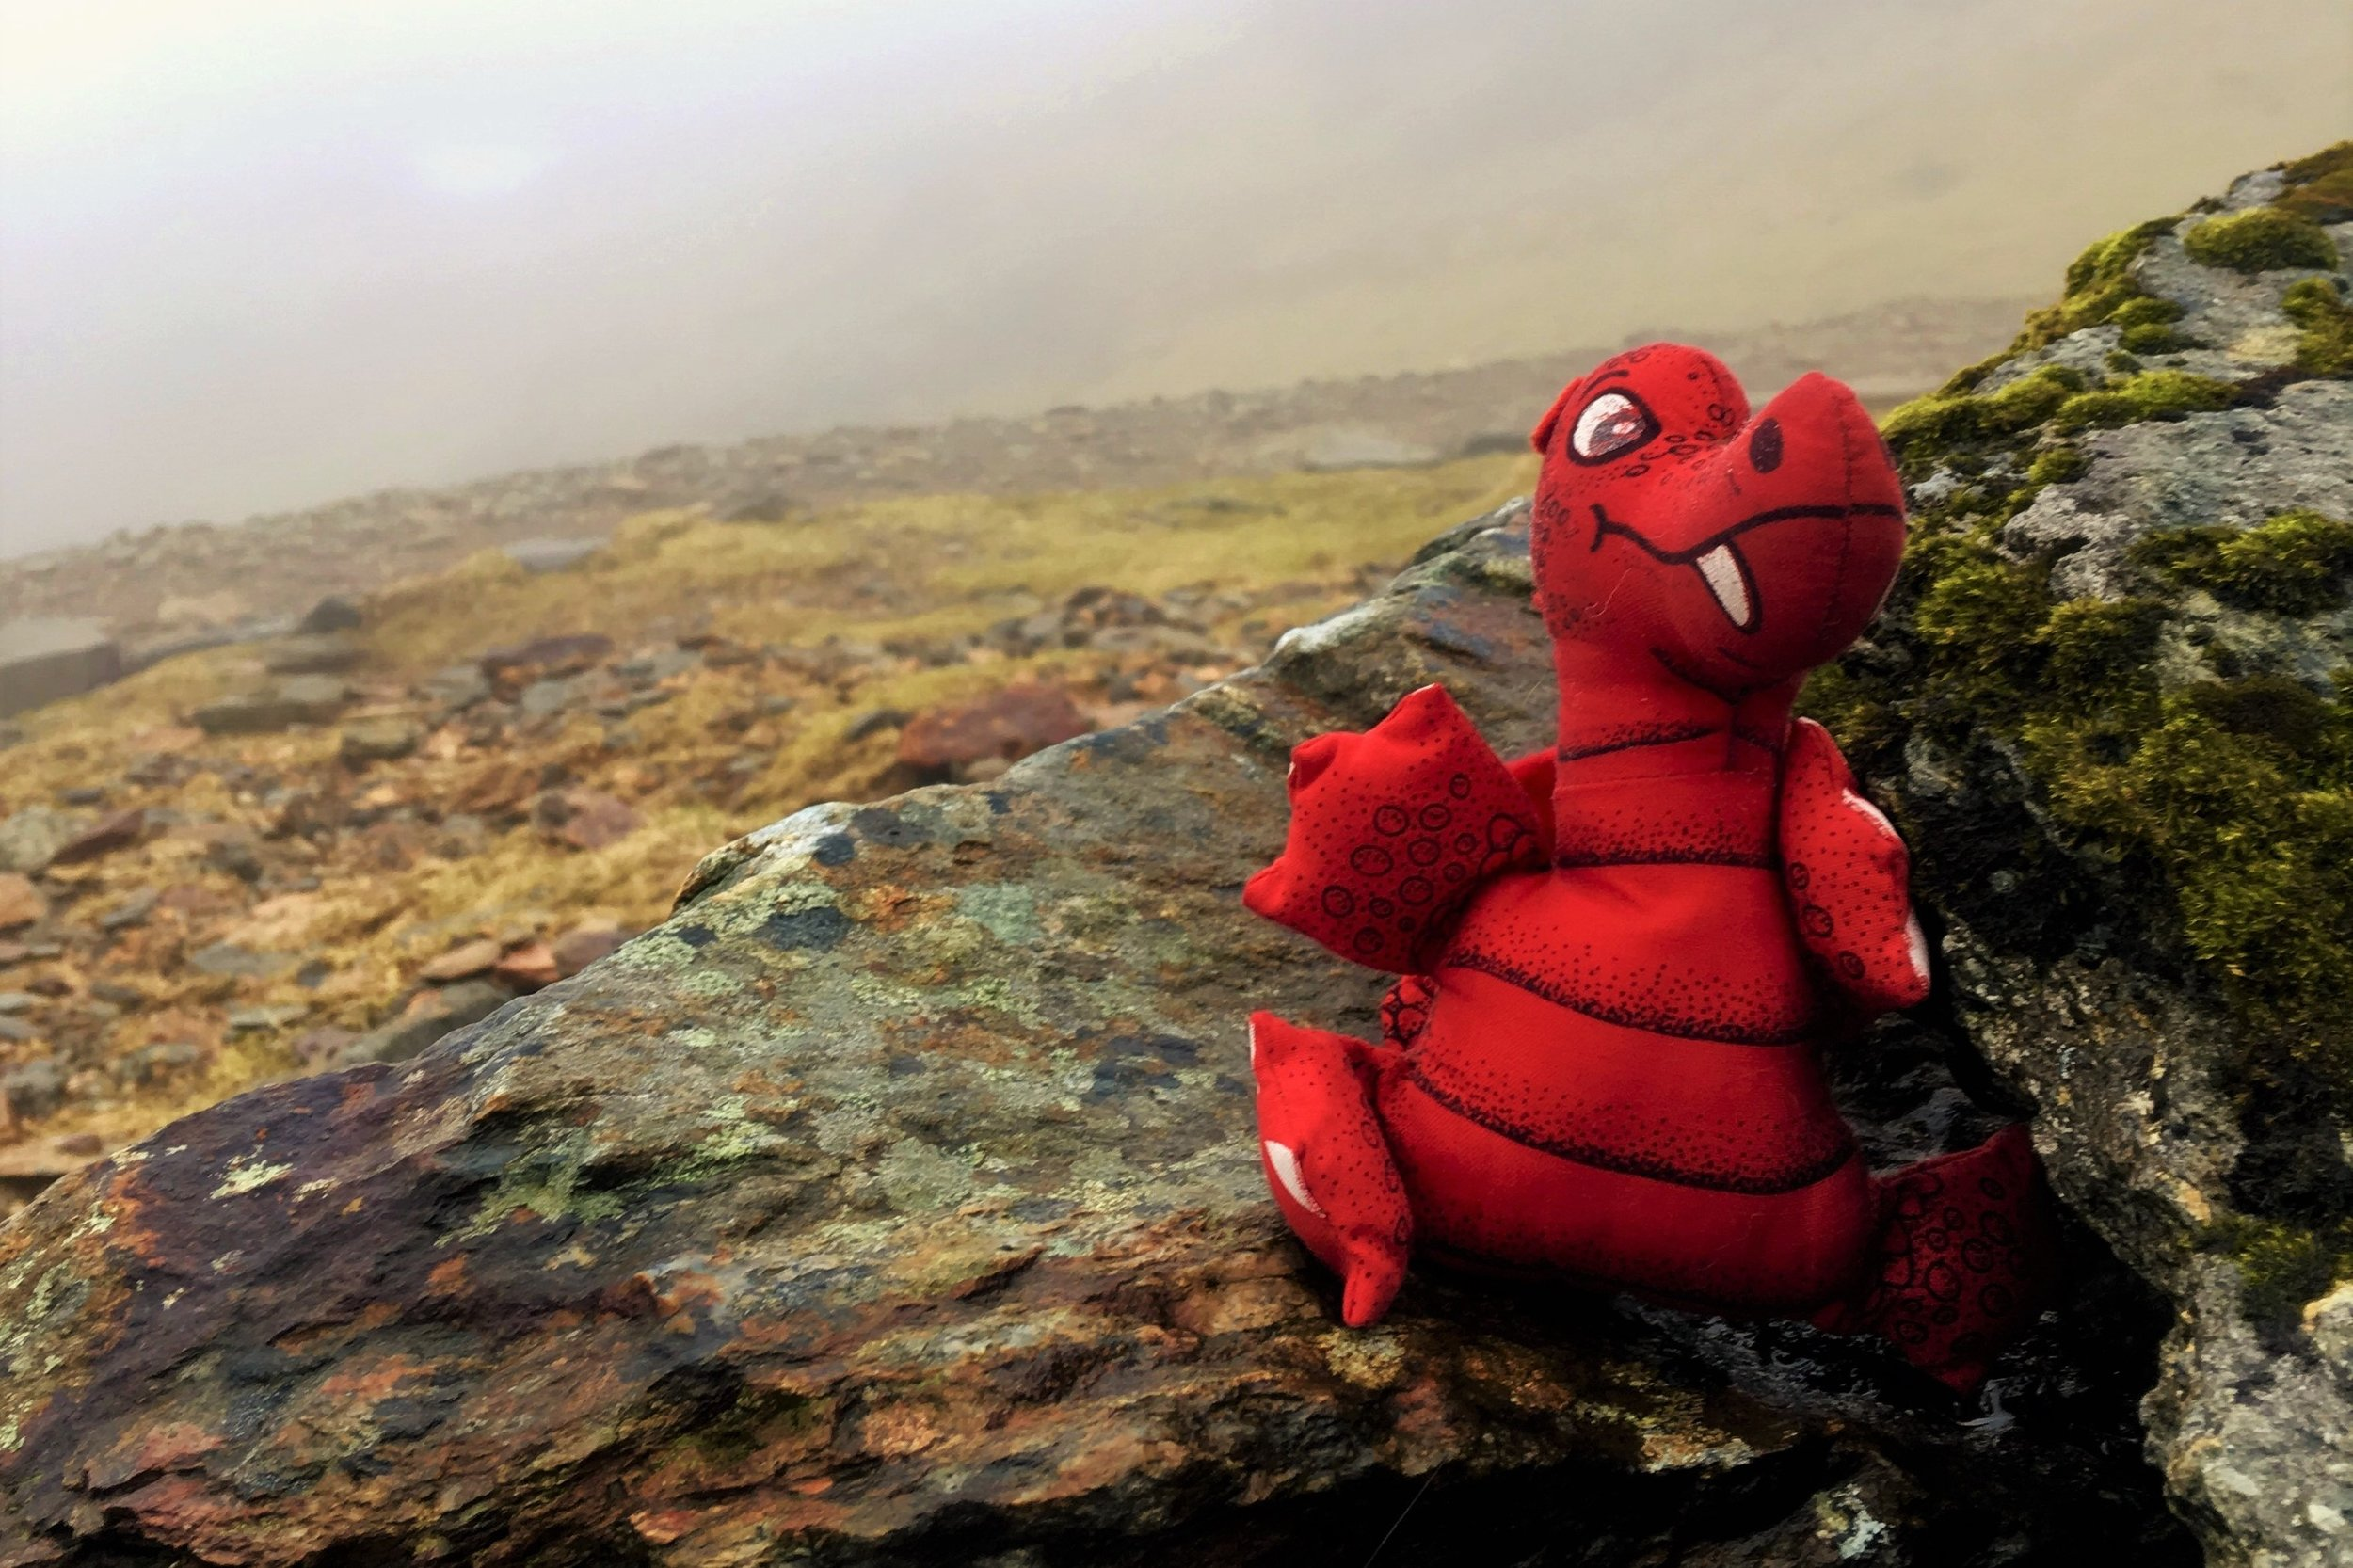 Red dragon mascot sits on wet, mossy rocks in a foggy mountain landscape in Snowdonia.